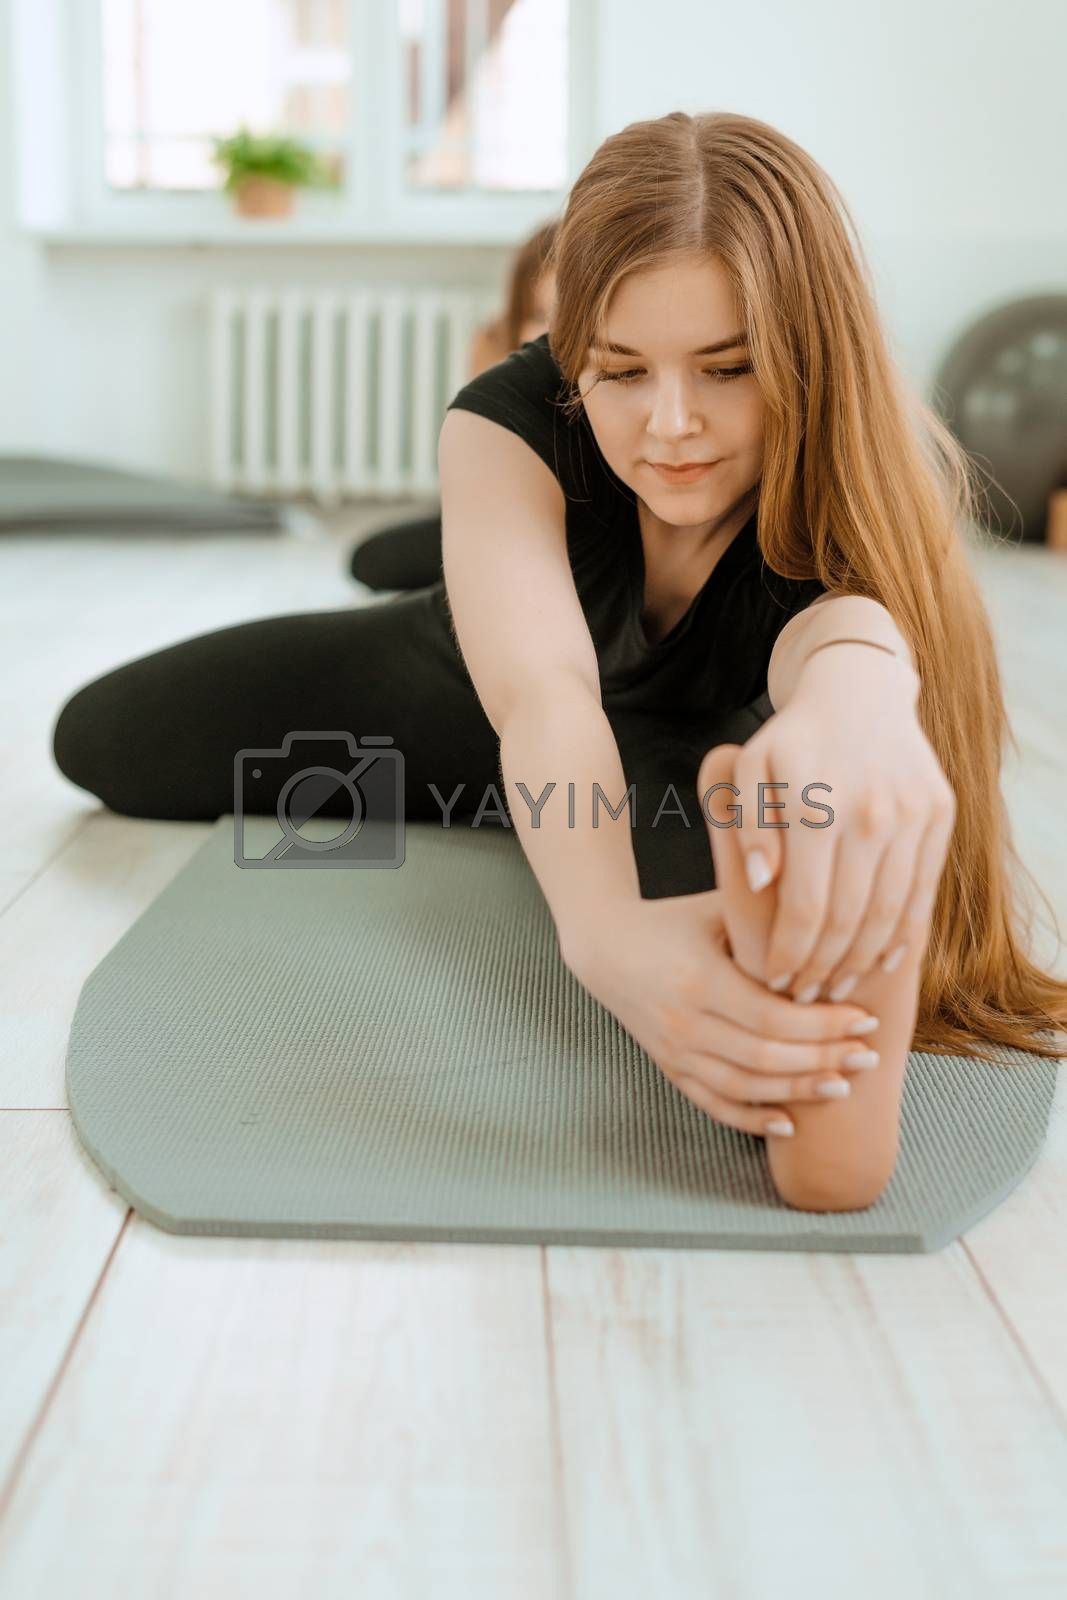 Stretching workout. Healthy lifestyle. Young beautiful girl in black uniform is doing stretching exercise. Akroyoga, yoga, fitness, workout, sport